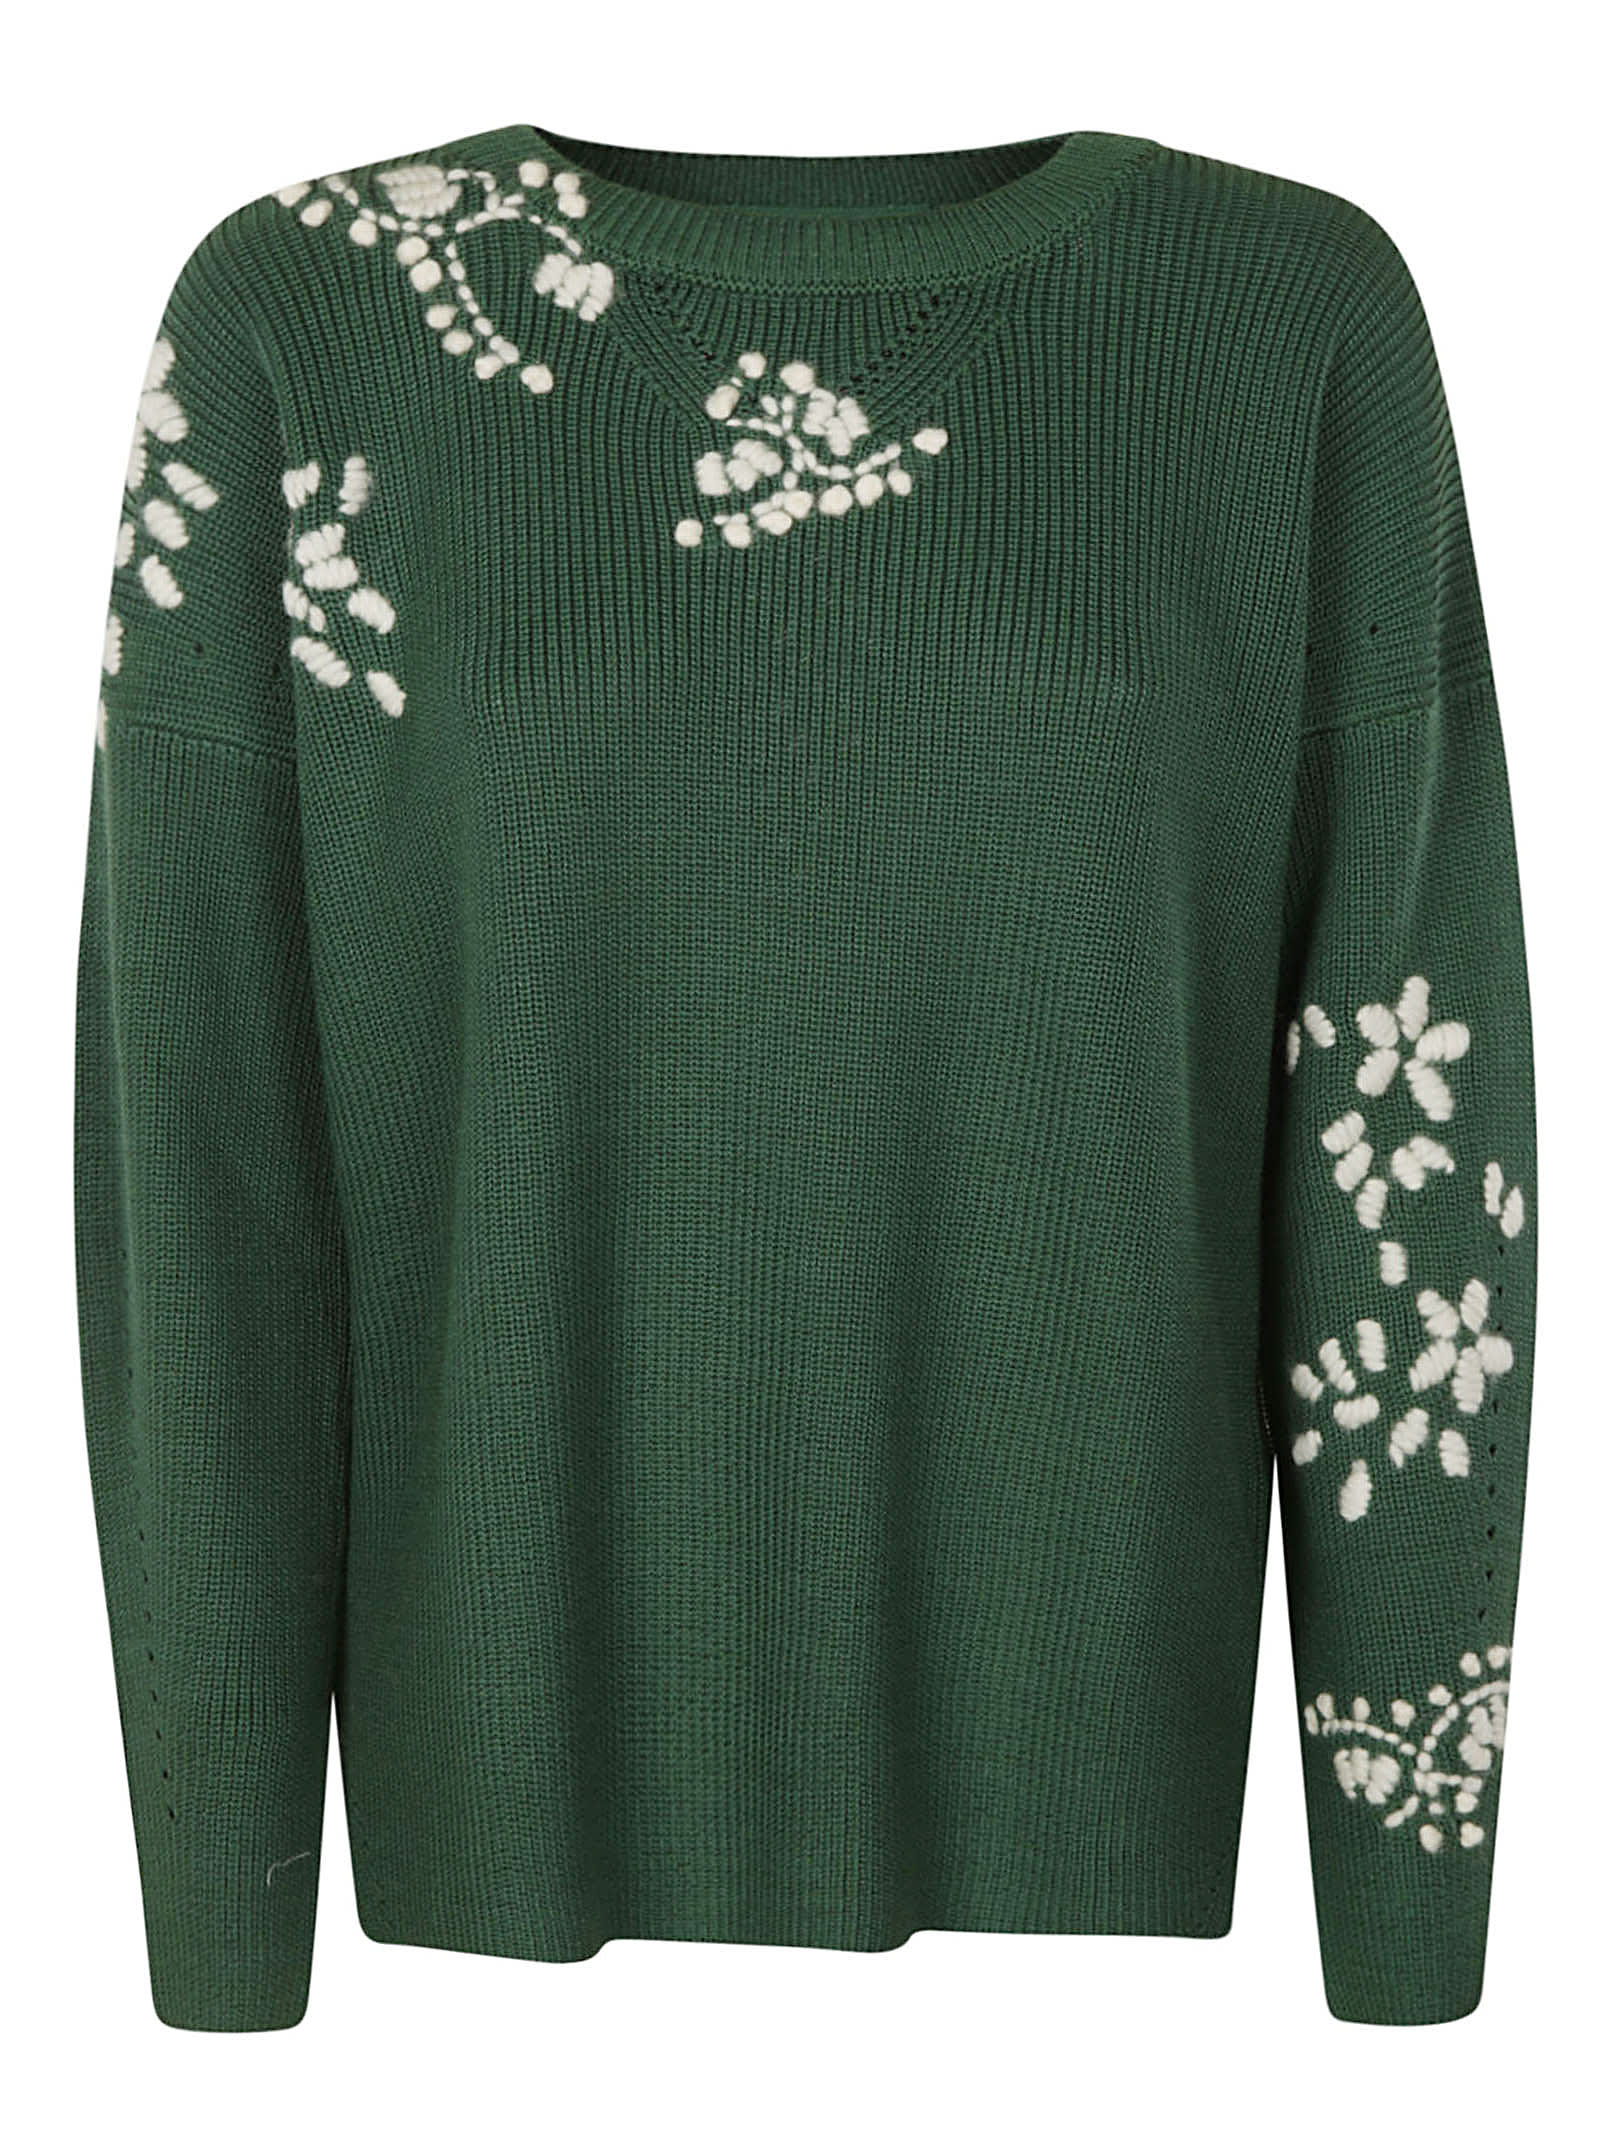 Ermanno Scervino RIBBED KNIT SWEATER